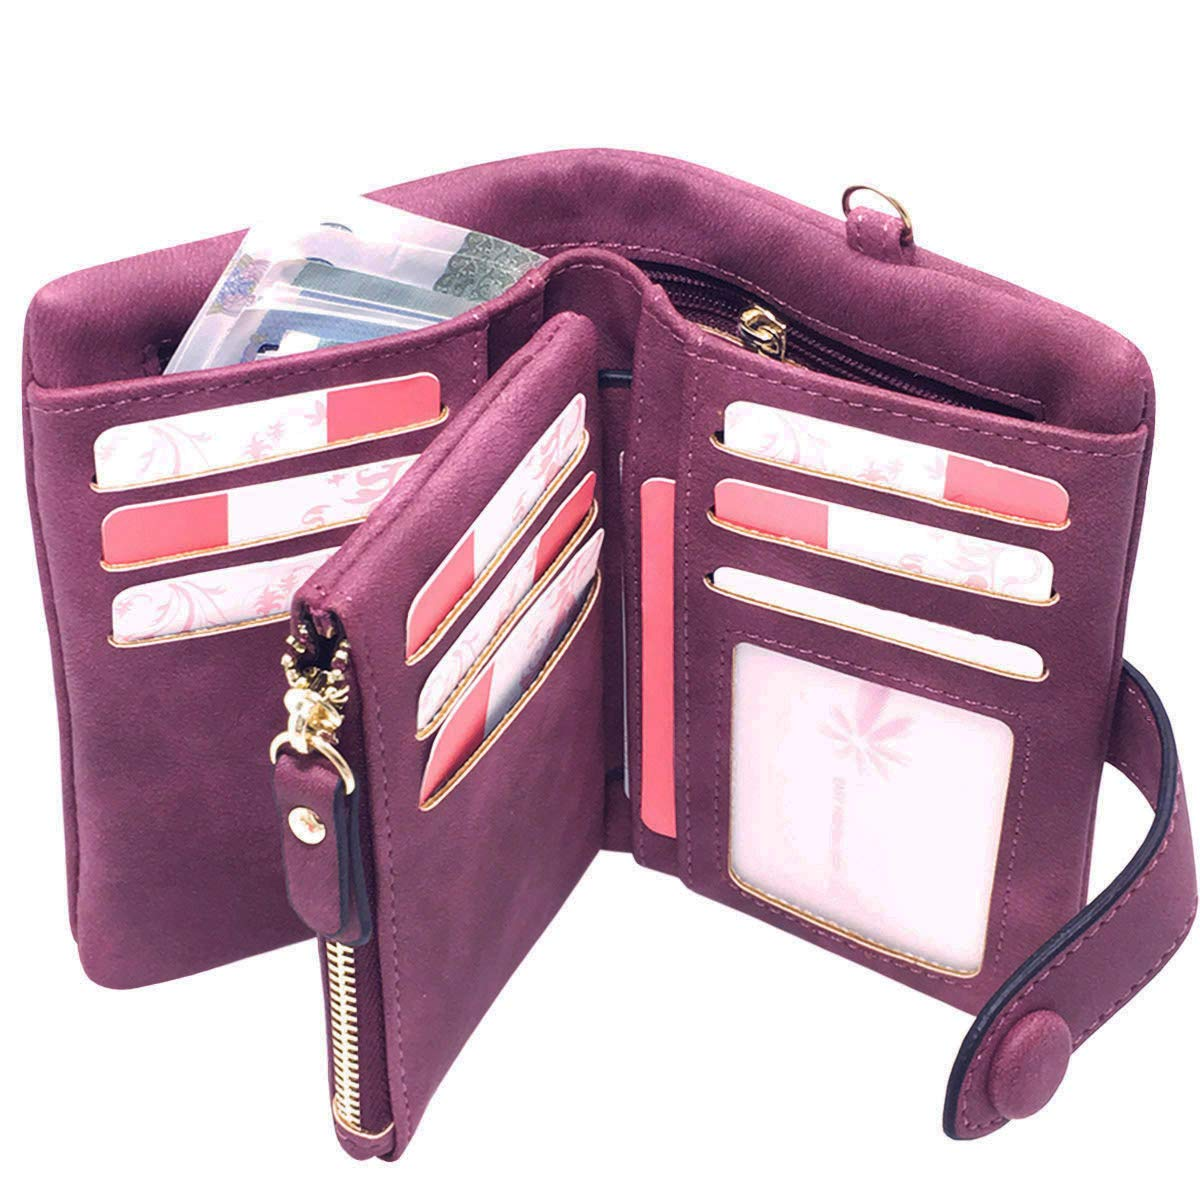 Rfid Leather Wallets for Women Ladies Wristlet Clutch Large Capacity Zipper Purse for Coins Card Holder Organizer(Purple)